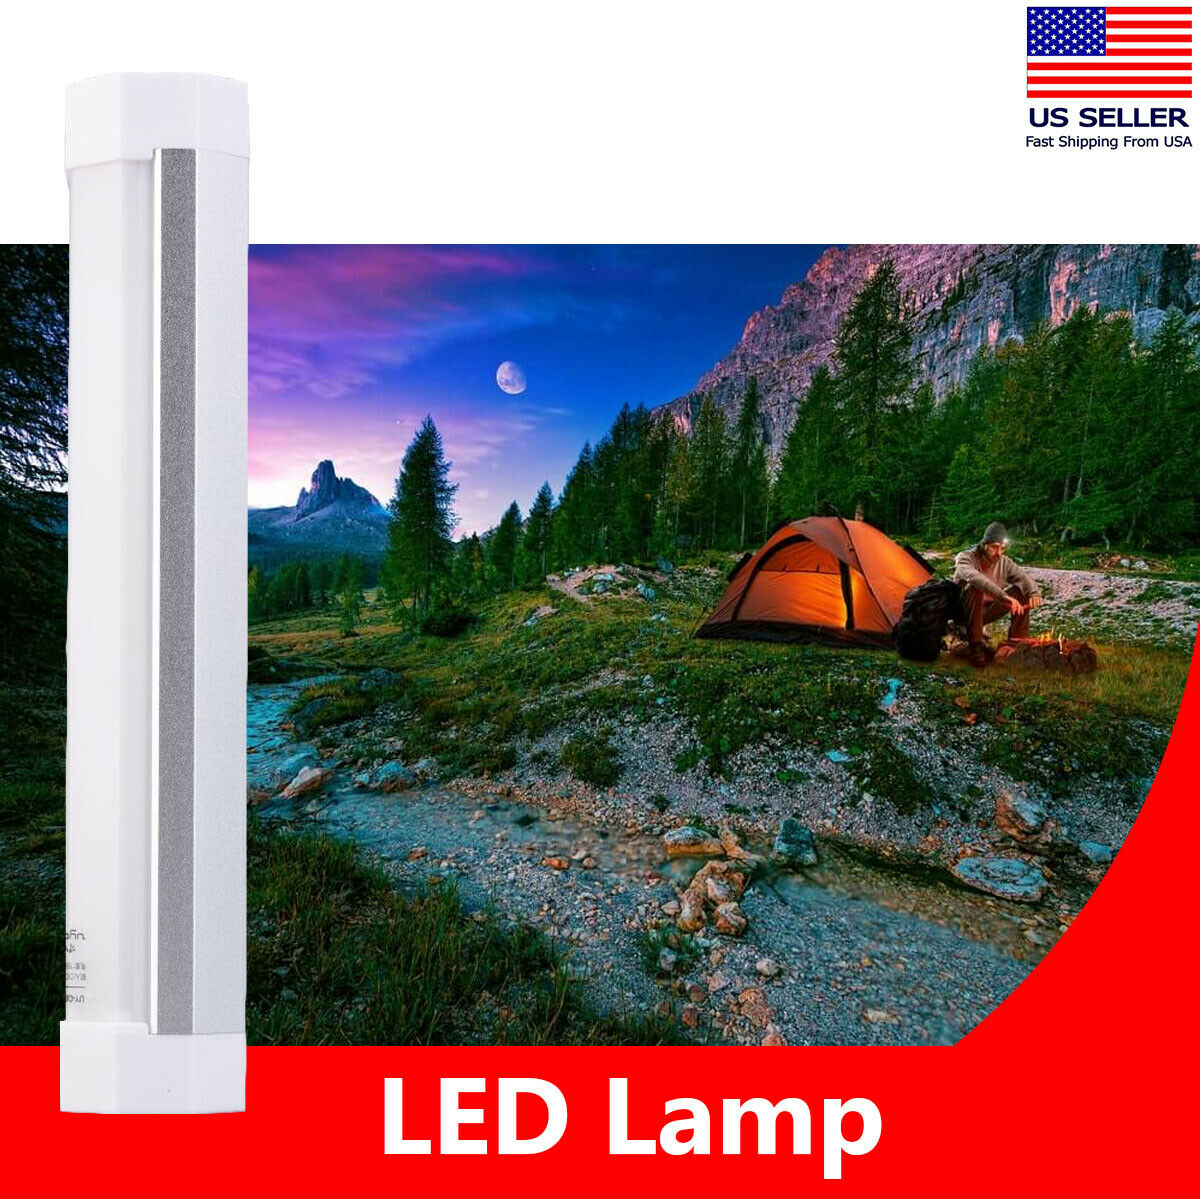 Details about  /USB LED Rechargeable Portable Lamp Solar Power Tent Light Outdoor Camping Hiking